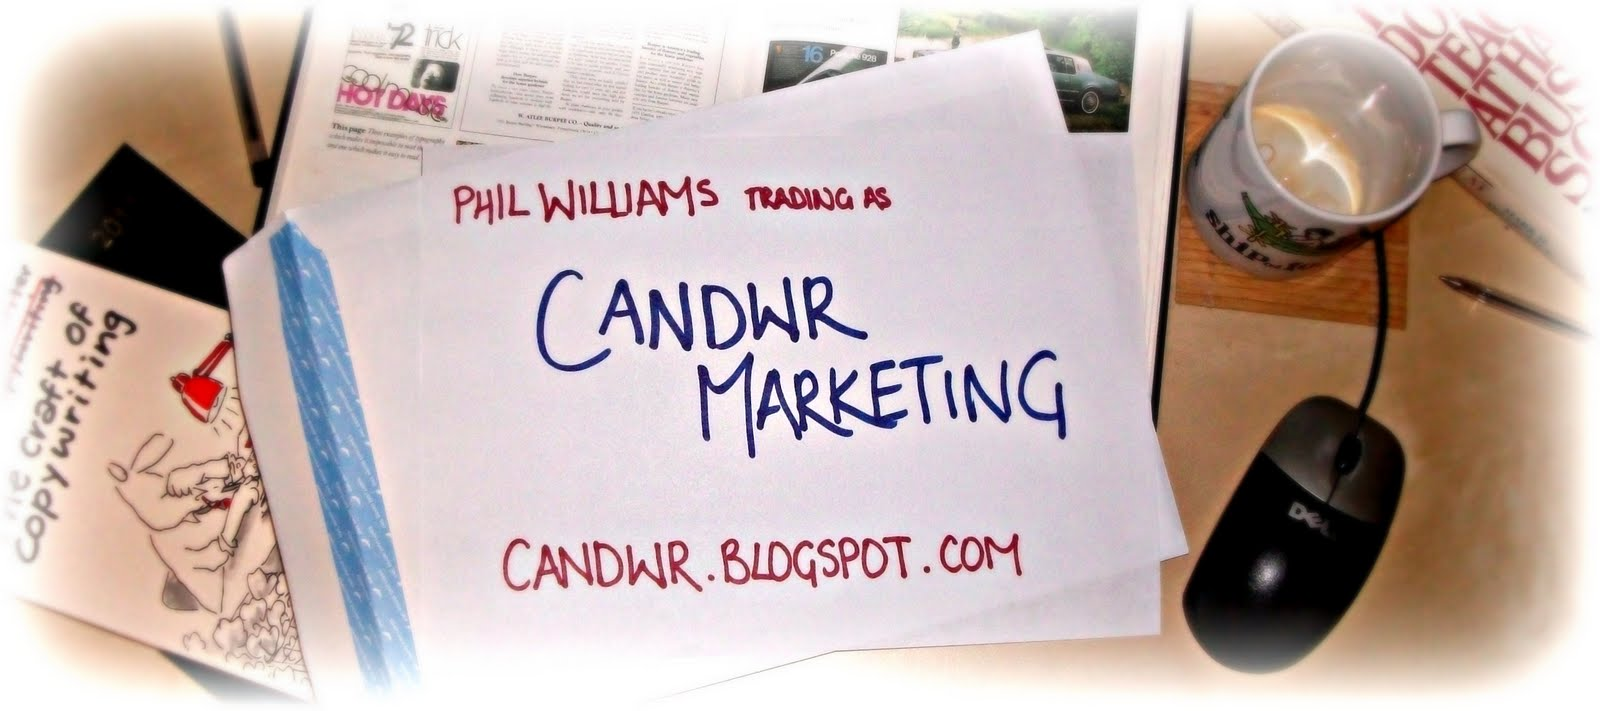 Candwr Marketing